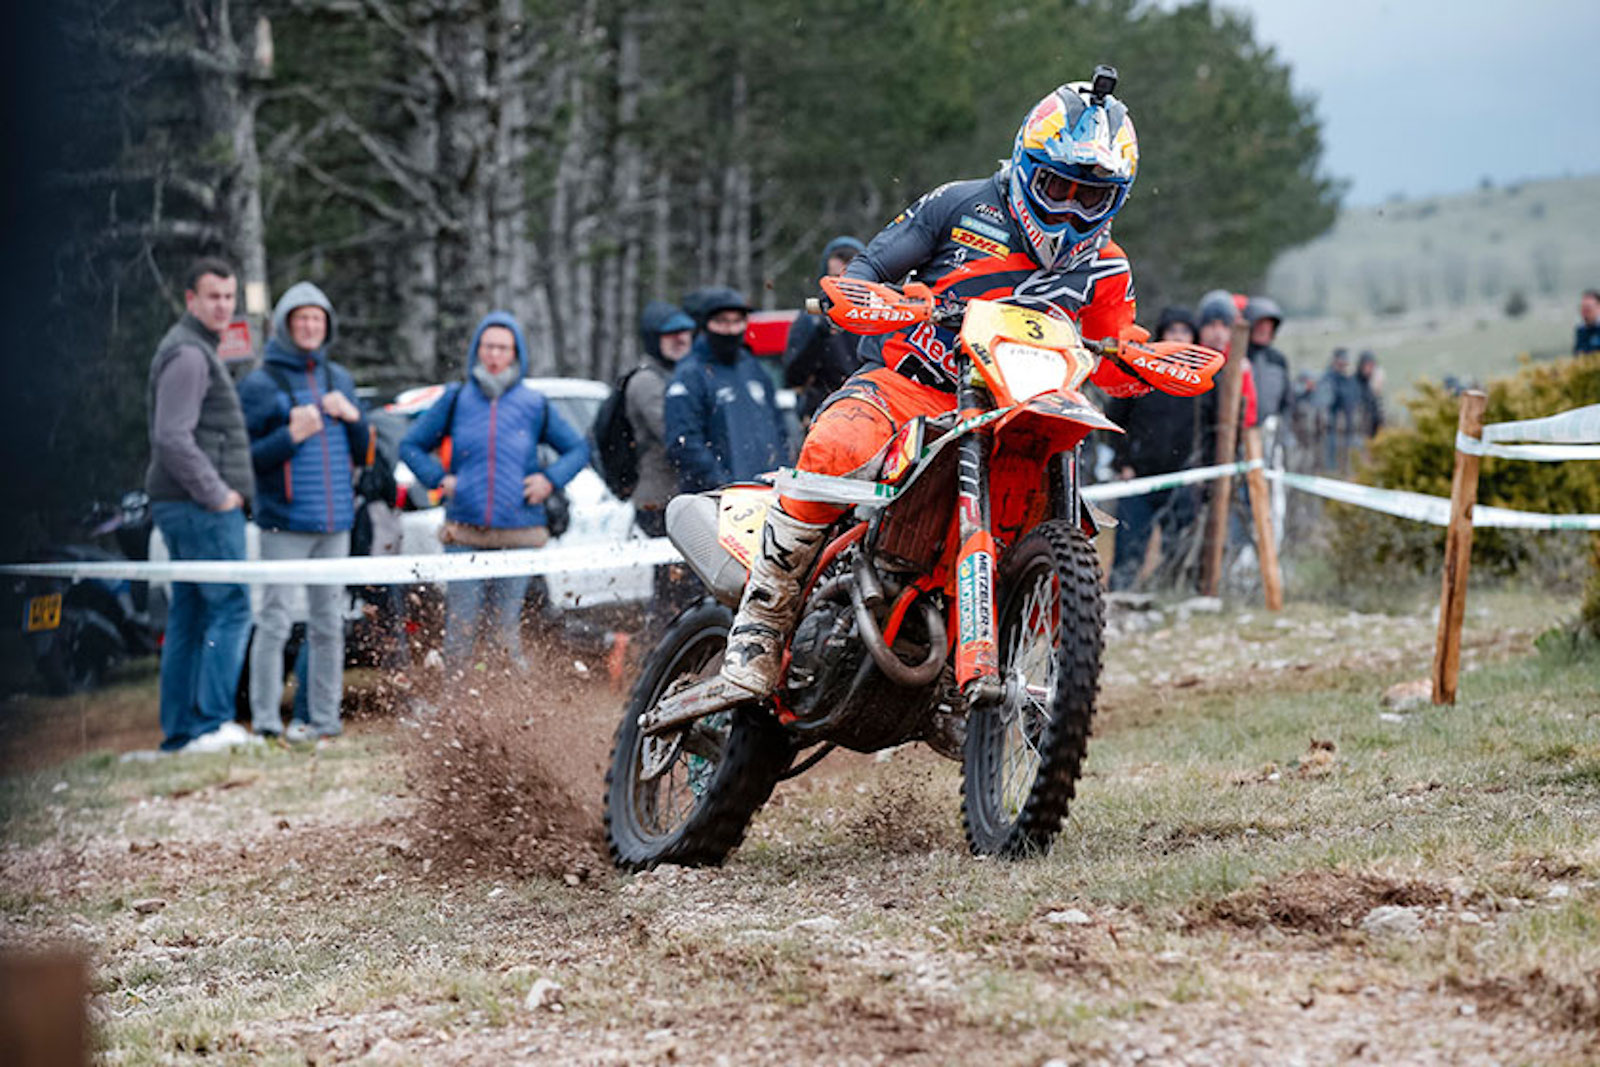 BR2 Enduro Solsona – Round 7 of the WESS race details revealed